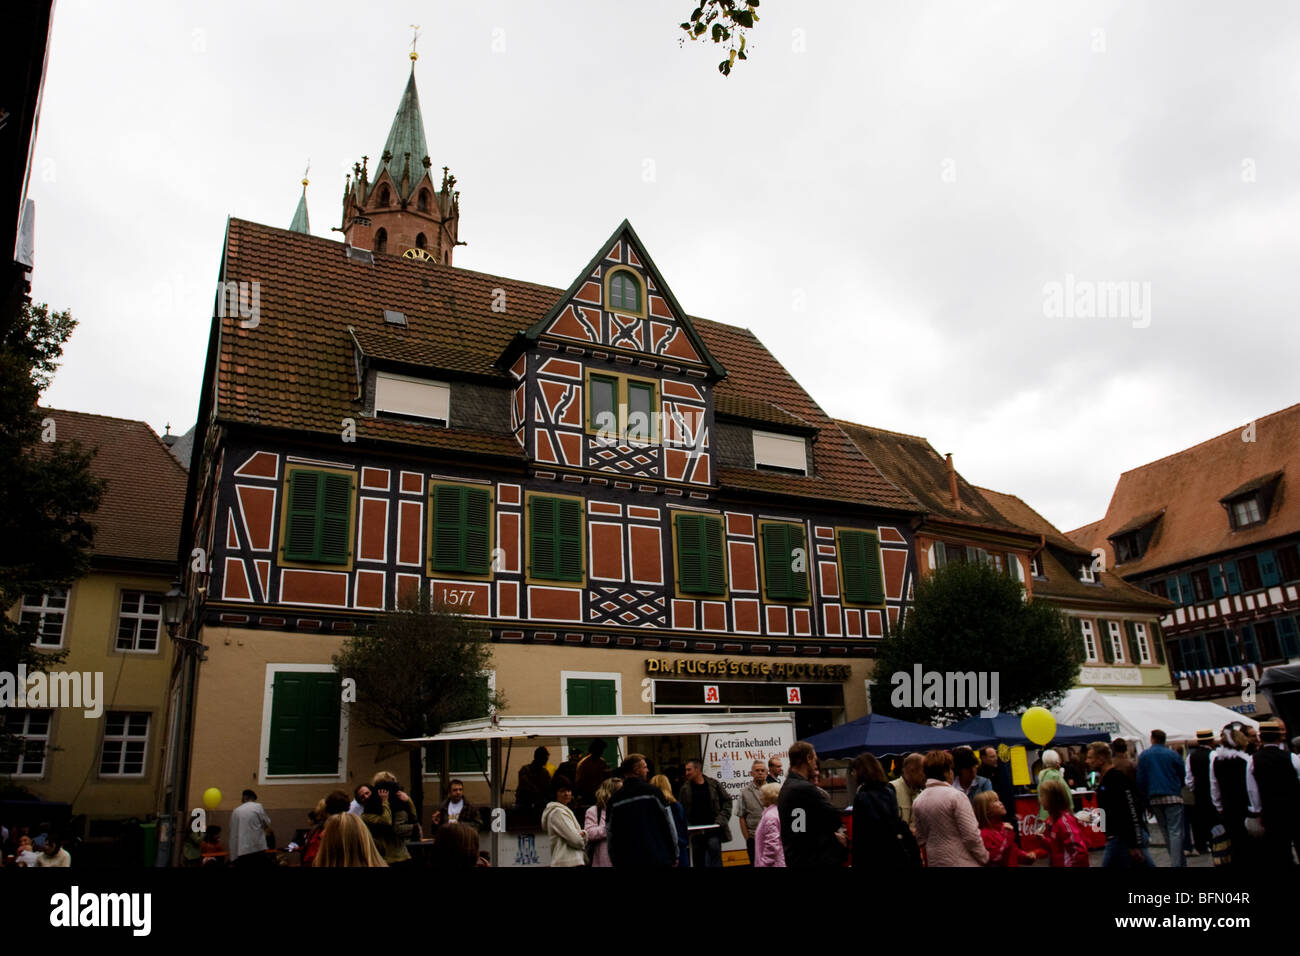 A historical Fachwerkbau building in Ladenburg, Germany during a local festival - Stock Image